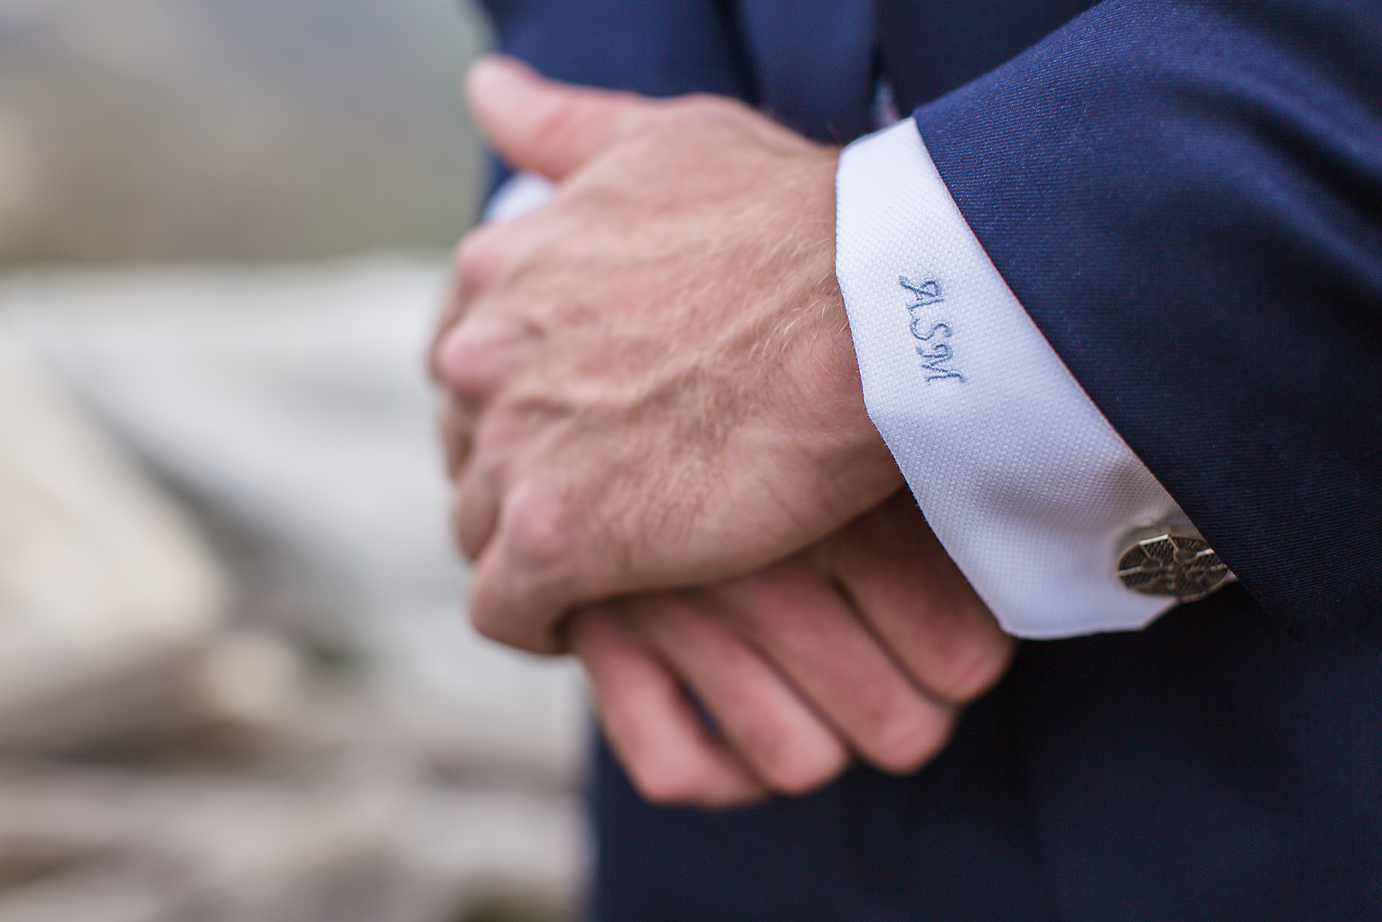 Dallas Wedding Photographer Glassy Mountain Chapel Greenville South Carolina scottish wedding grooms details cuff link and personalized shirt cuff kate marie portraiture.png